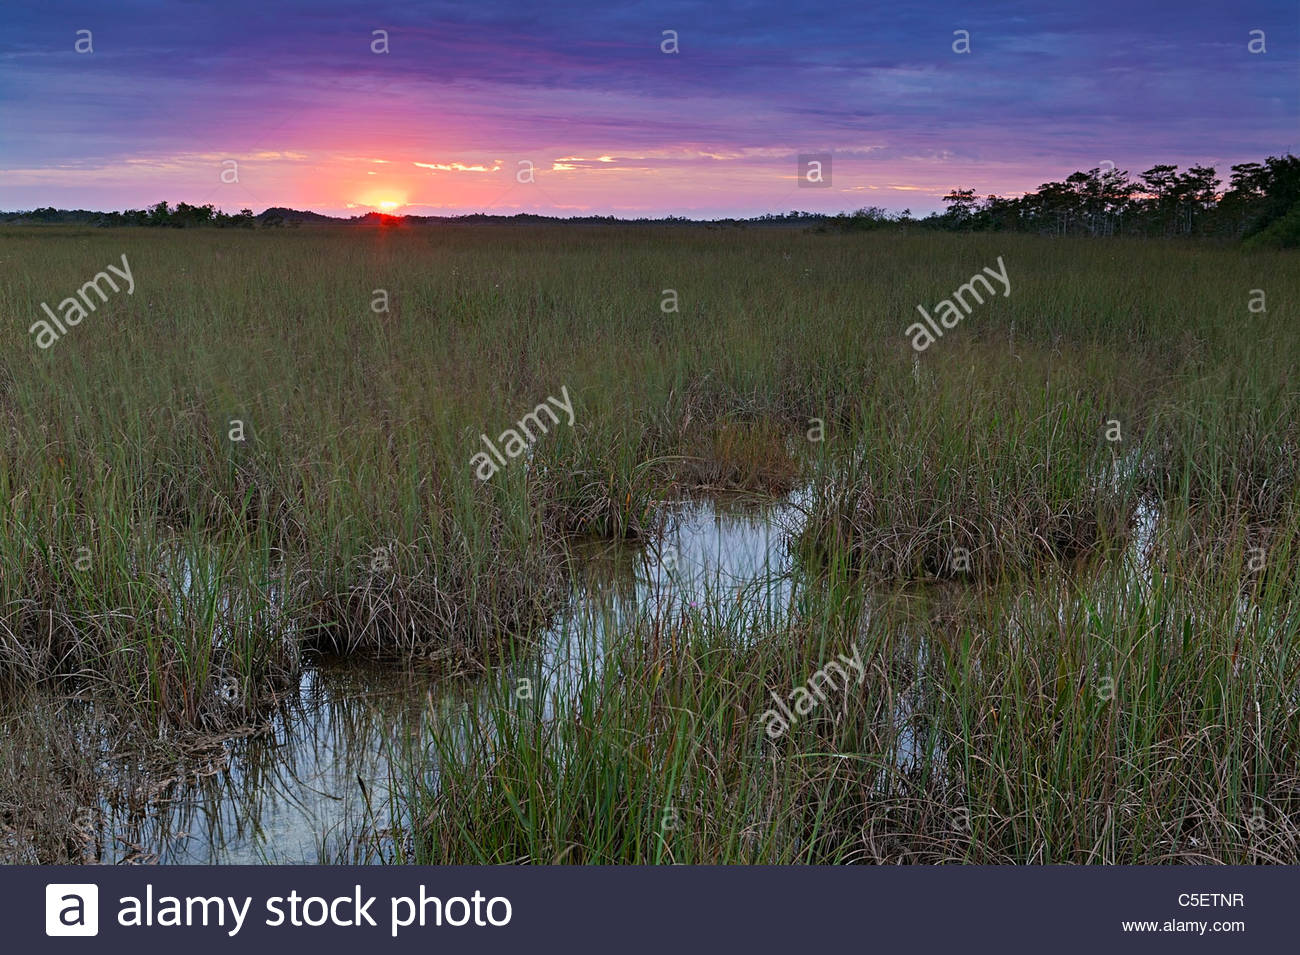 The sun rises over the Florida Everglades, known as the 'river of grass.' - Stock Image